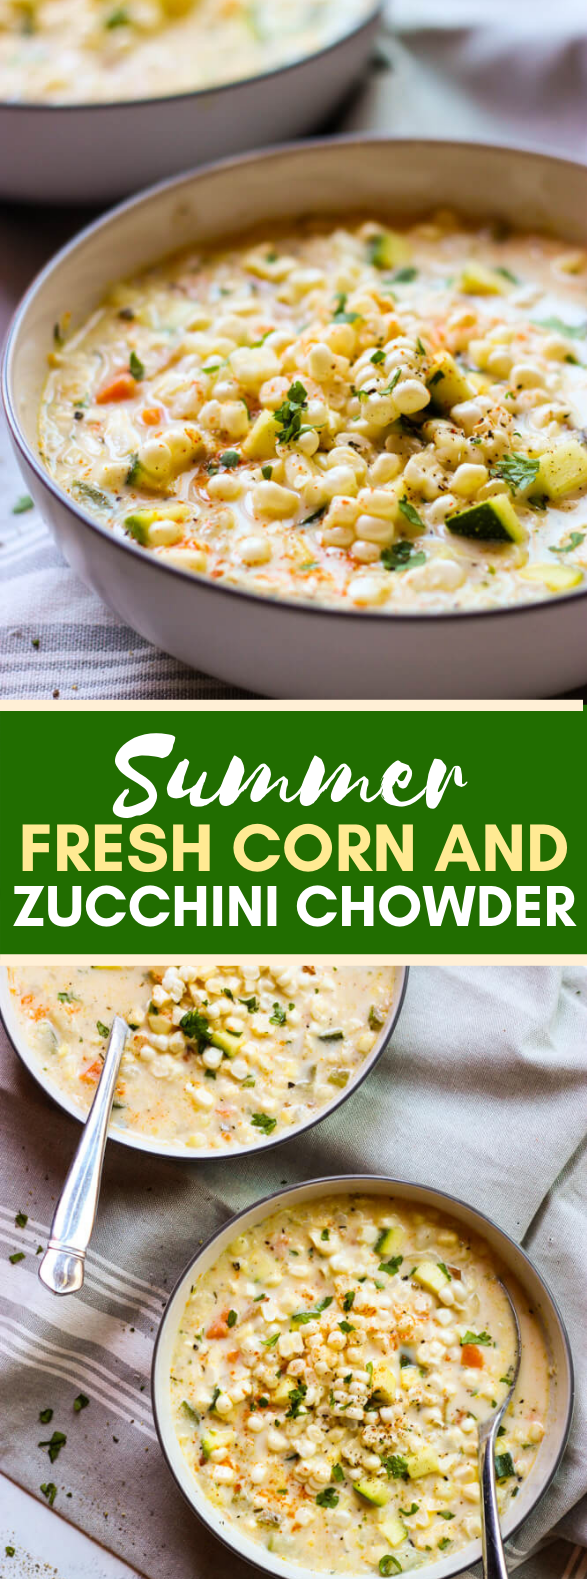 SUMMER FRESH CORN AND ZUCCHINI CHOWDER #vegetarian #veggies